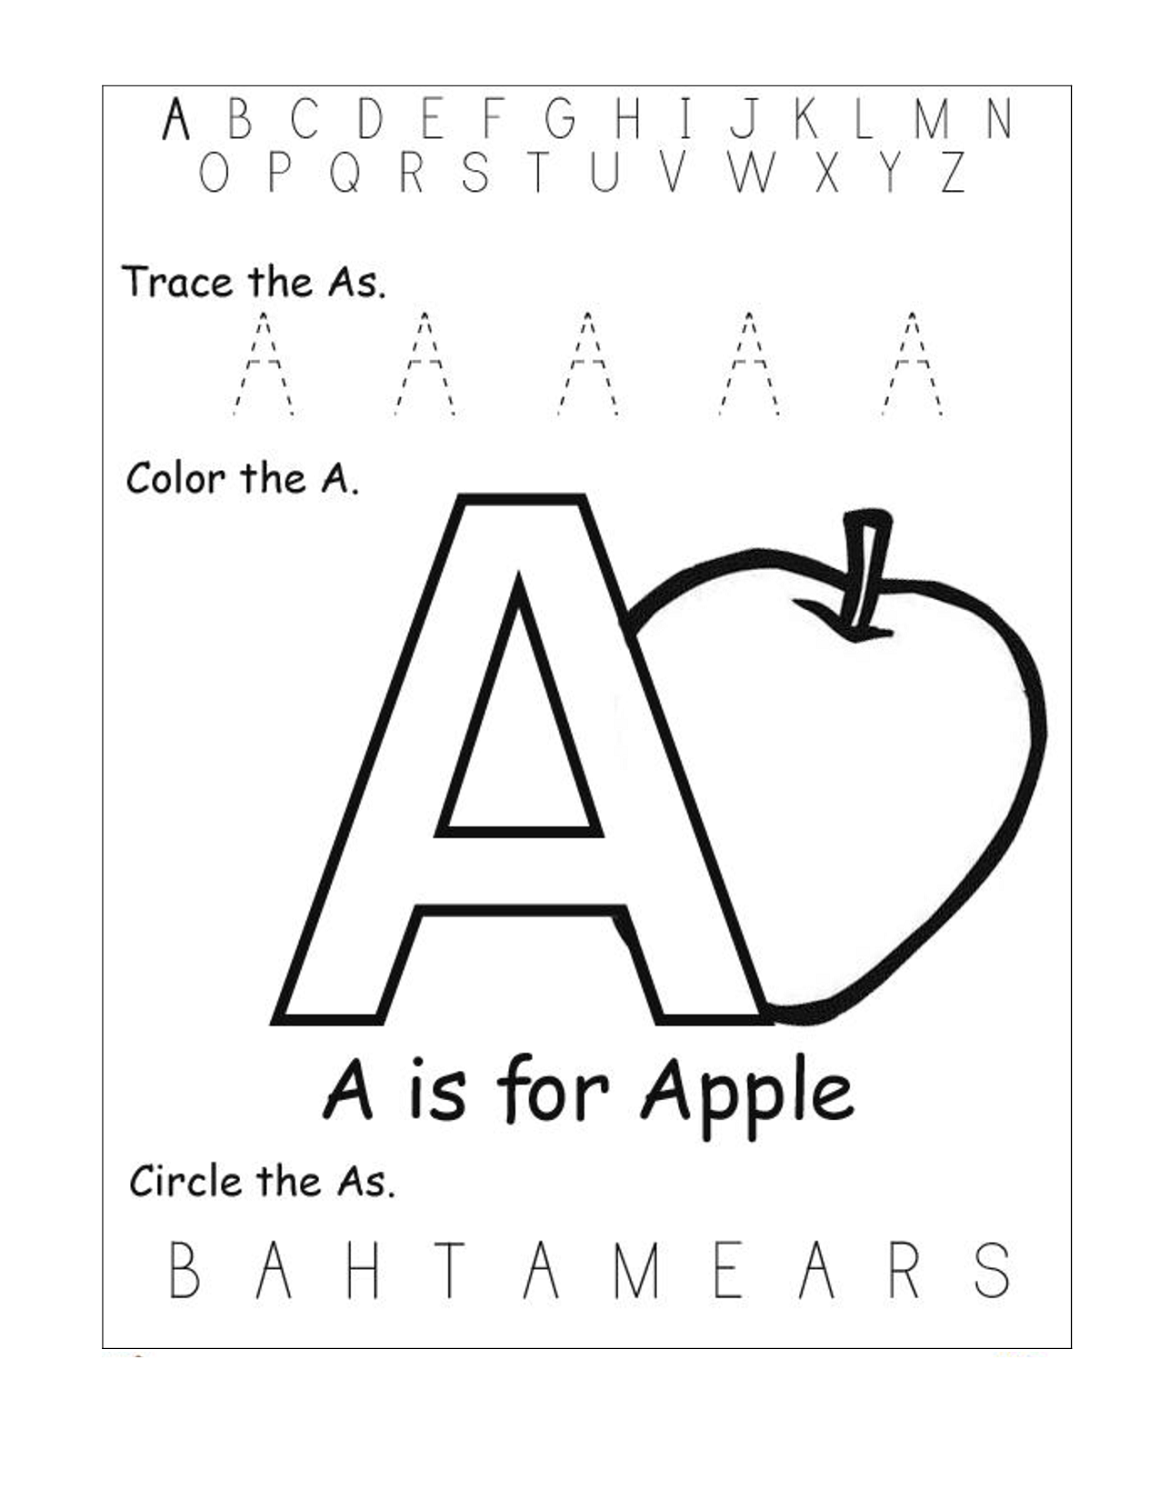 trace letter a sheets to print kids worksheets printable alphabet worksheets preschool. Black Bedroom Furniture Sets. Home Design Ideas